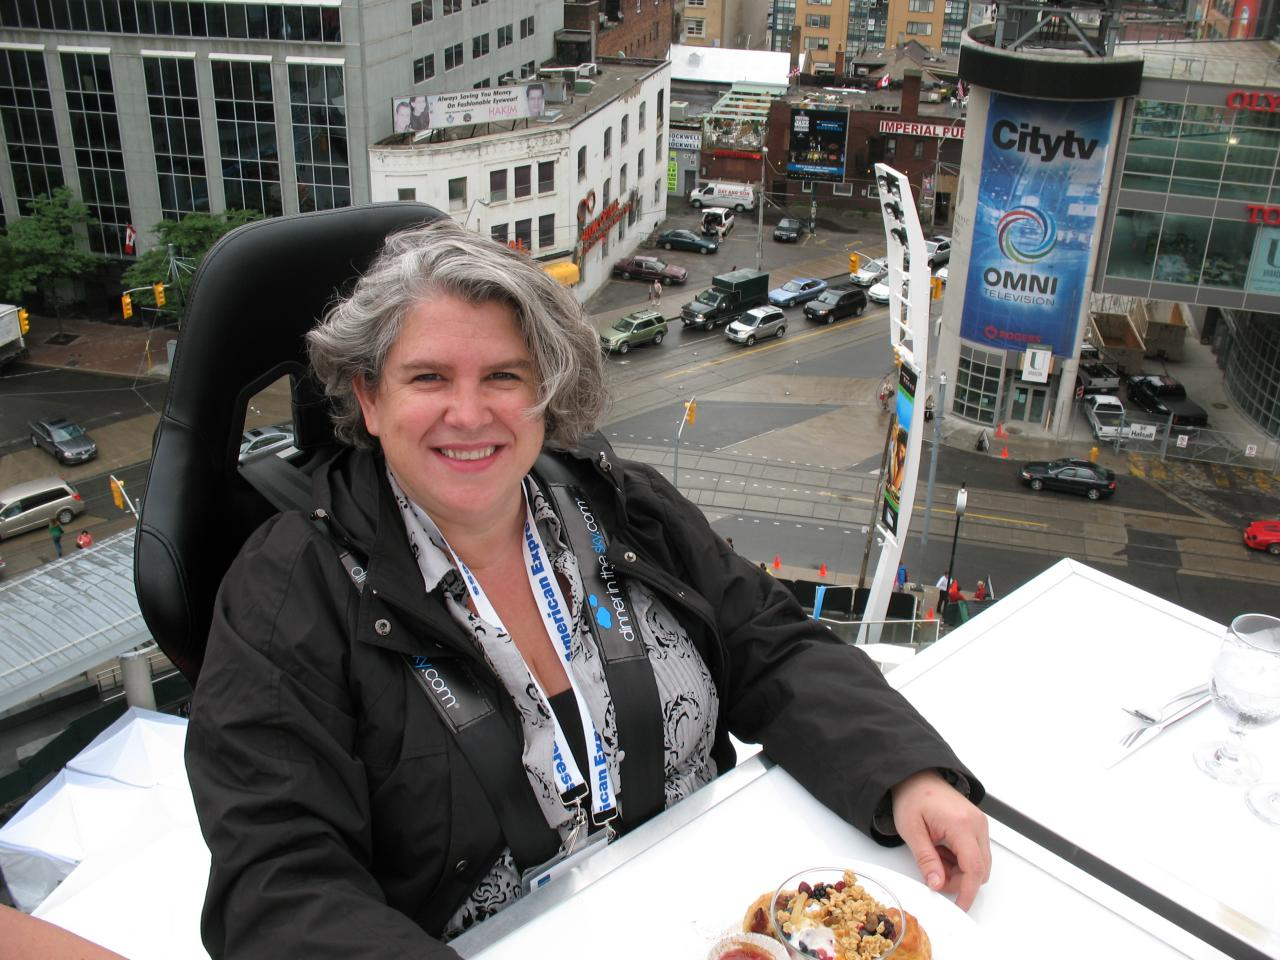 Dinner in the Sky – Summerlicious 2008 Launch